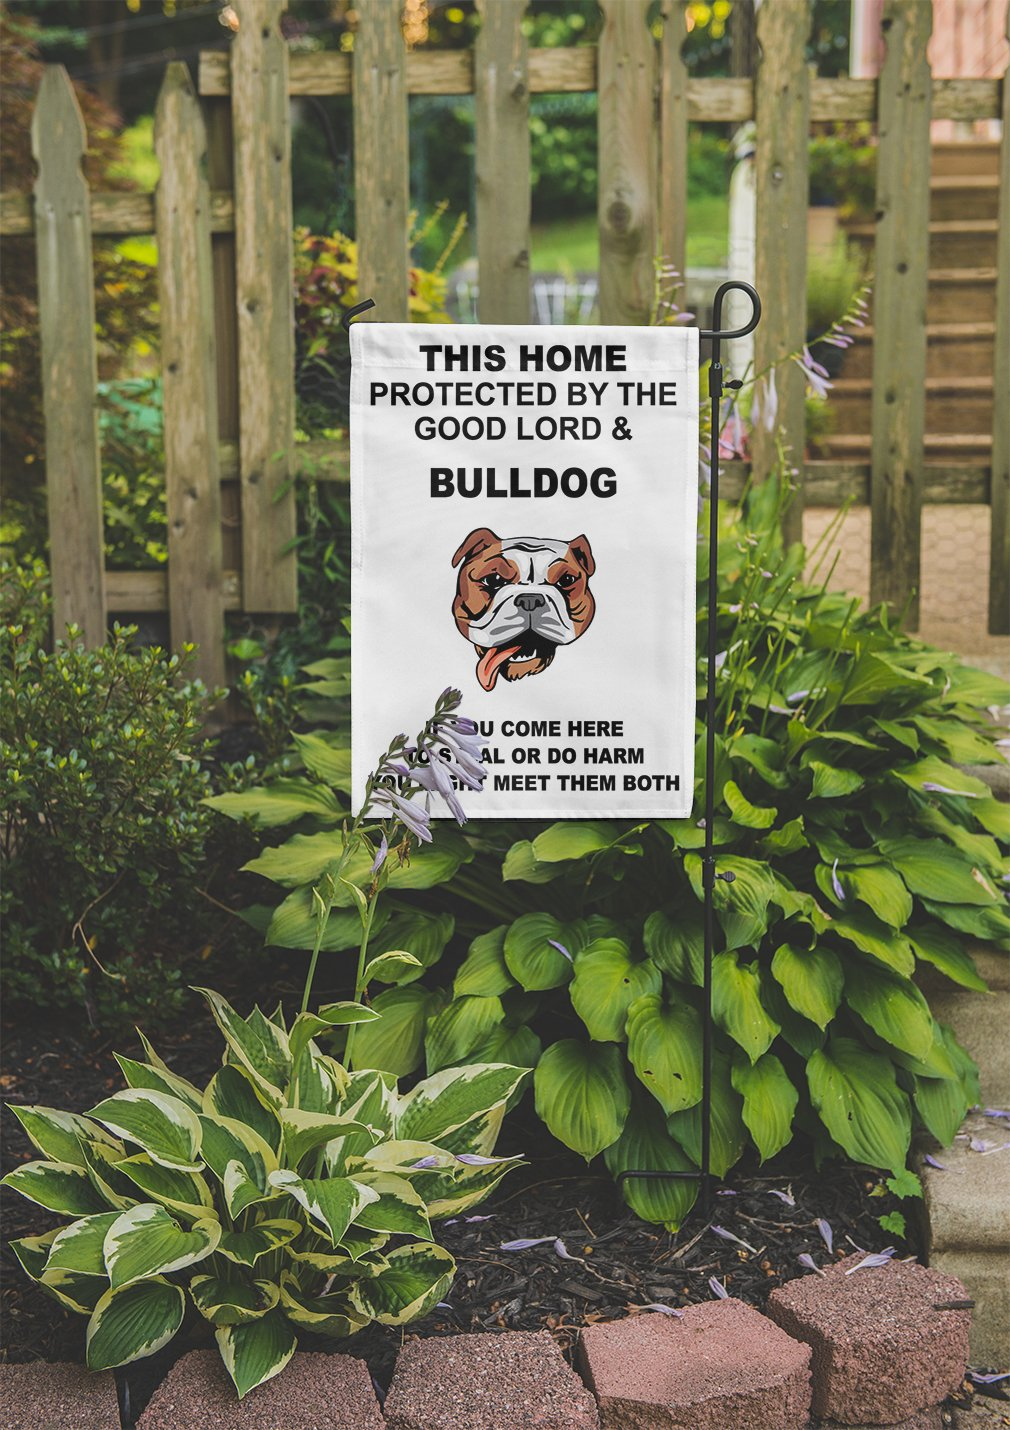 Home protected Good Lord BULLDOG DOG Meet Both Yard House Garden Flag Flag Only 8'' x 11 1/2''